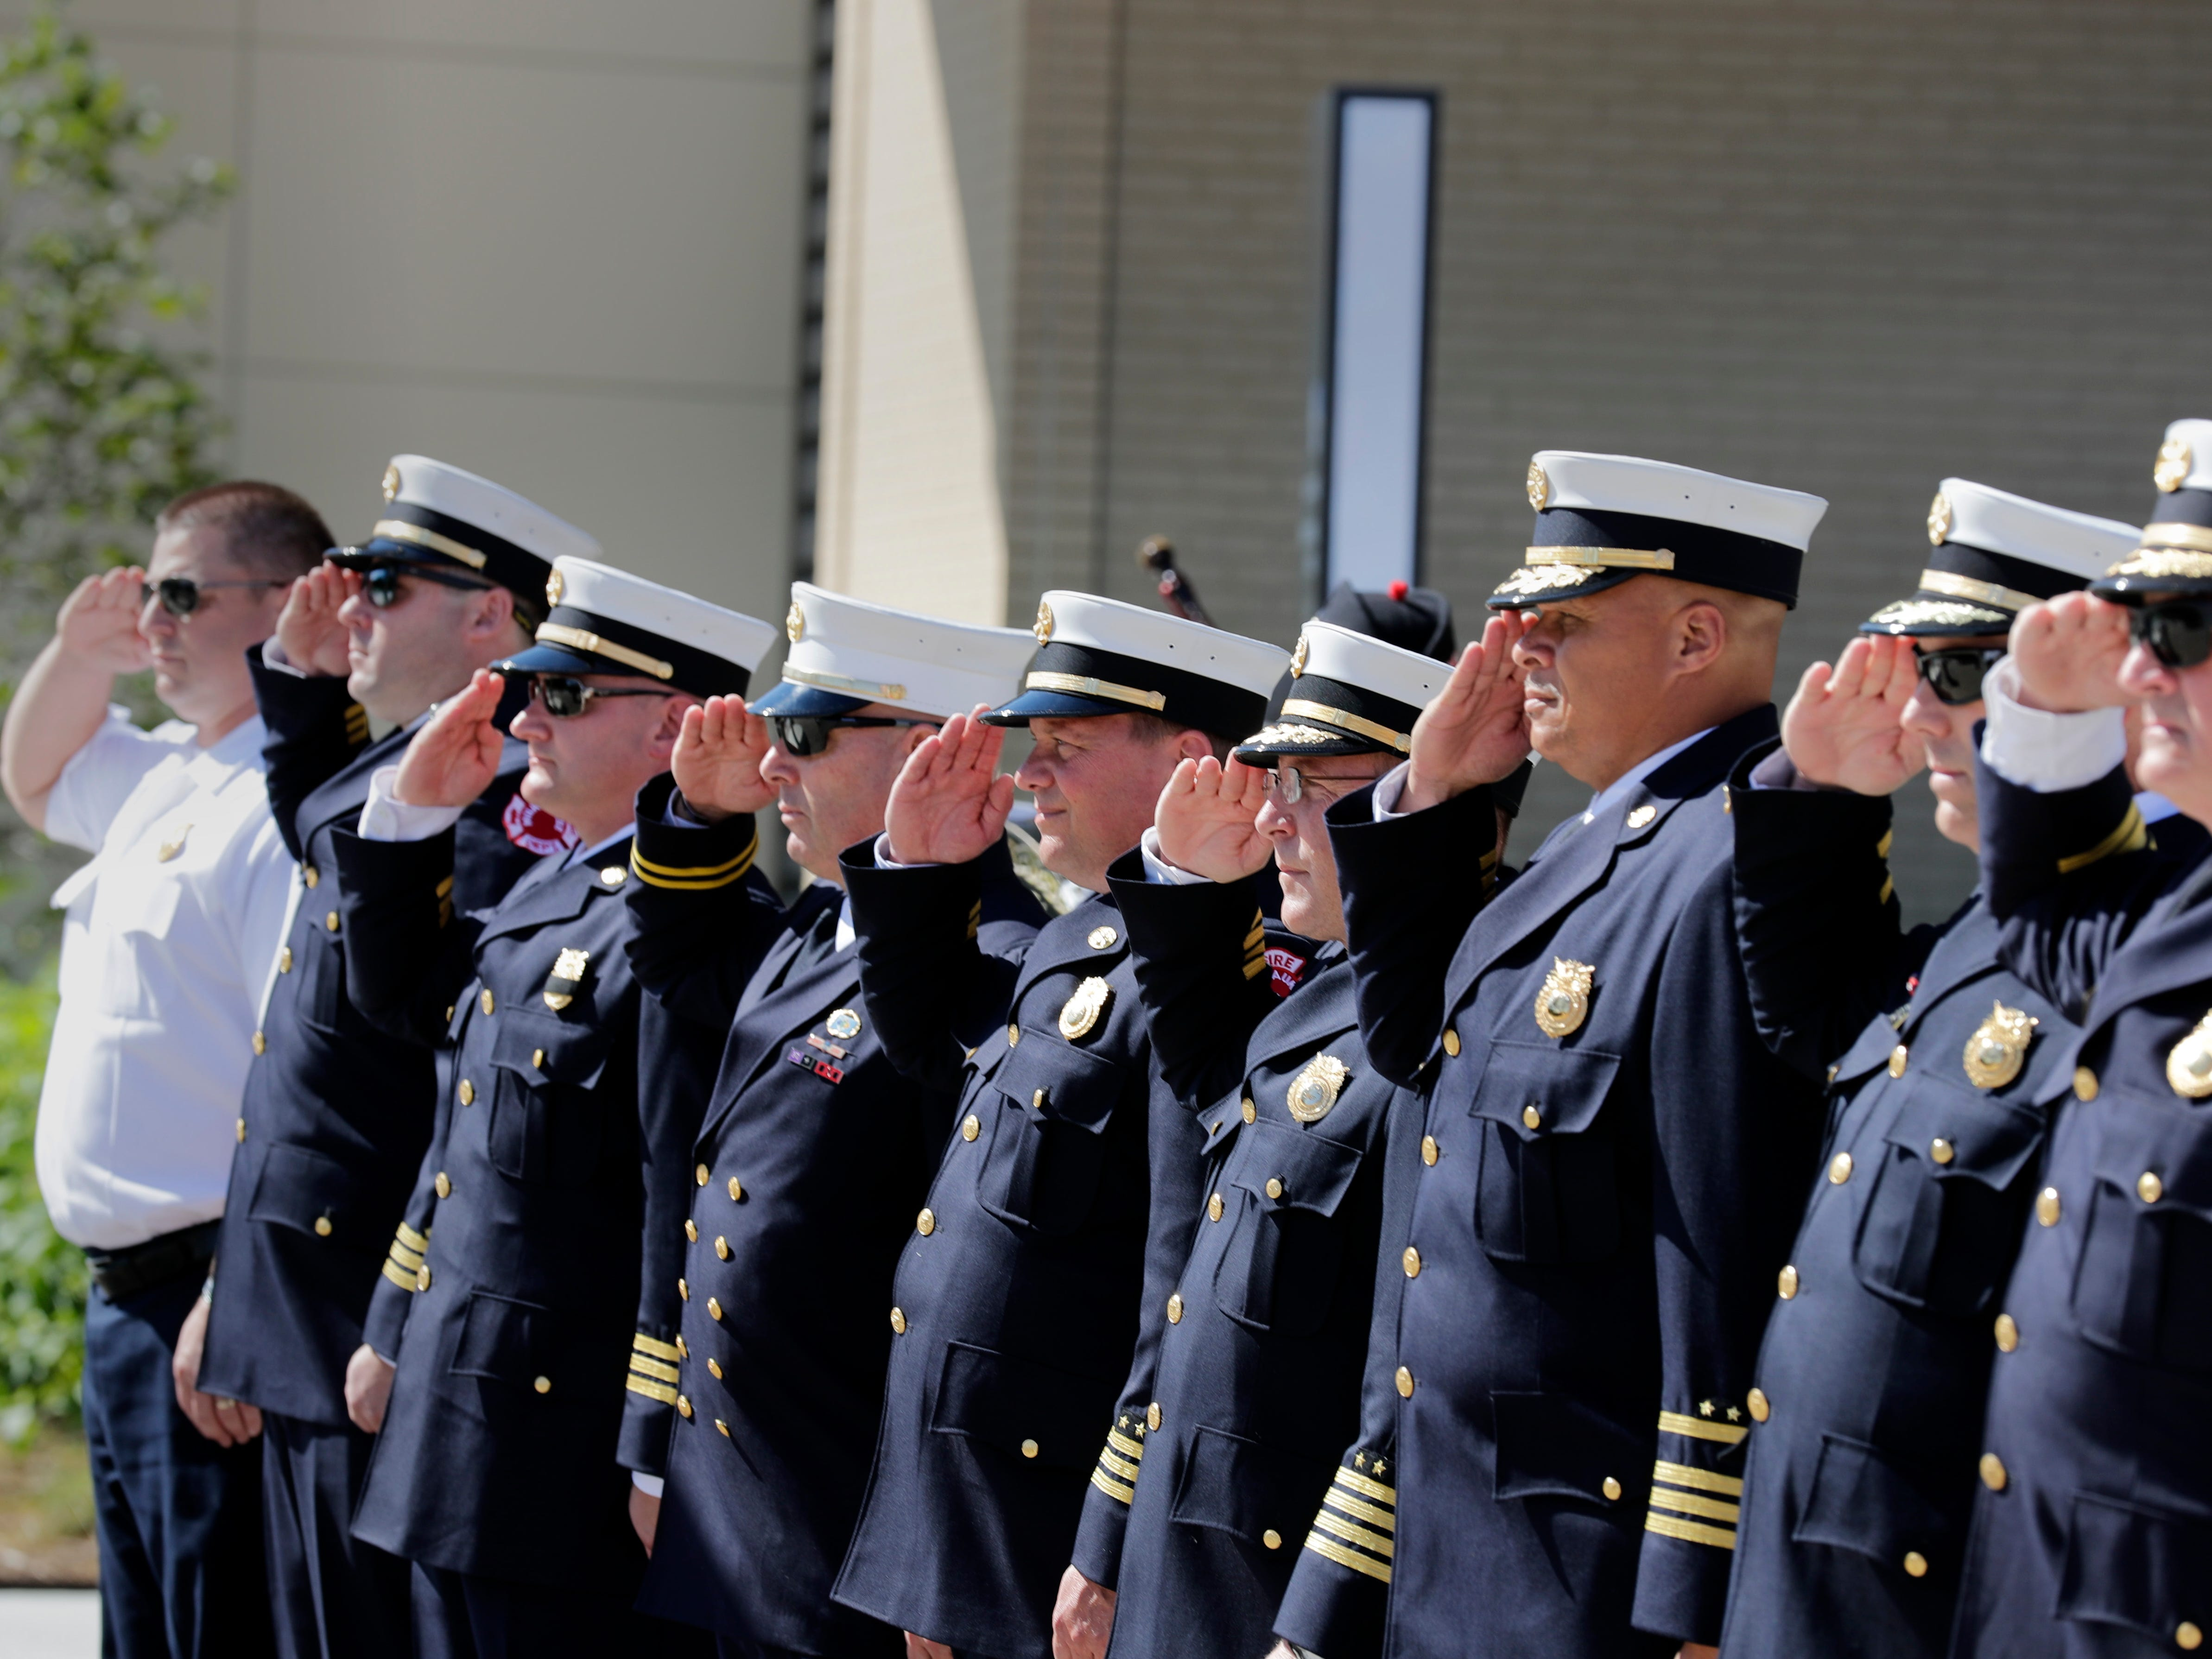 Milwaukee Fire Department officials salute as they pay tribute to those who lost their lives in the 9-11 attacks.